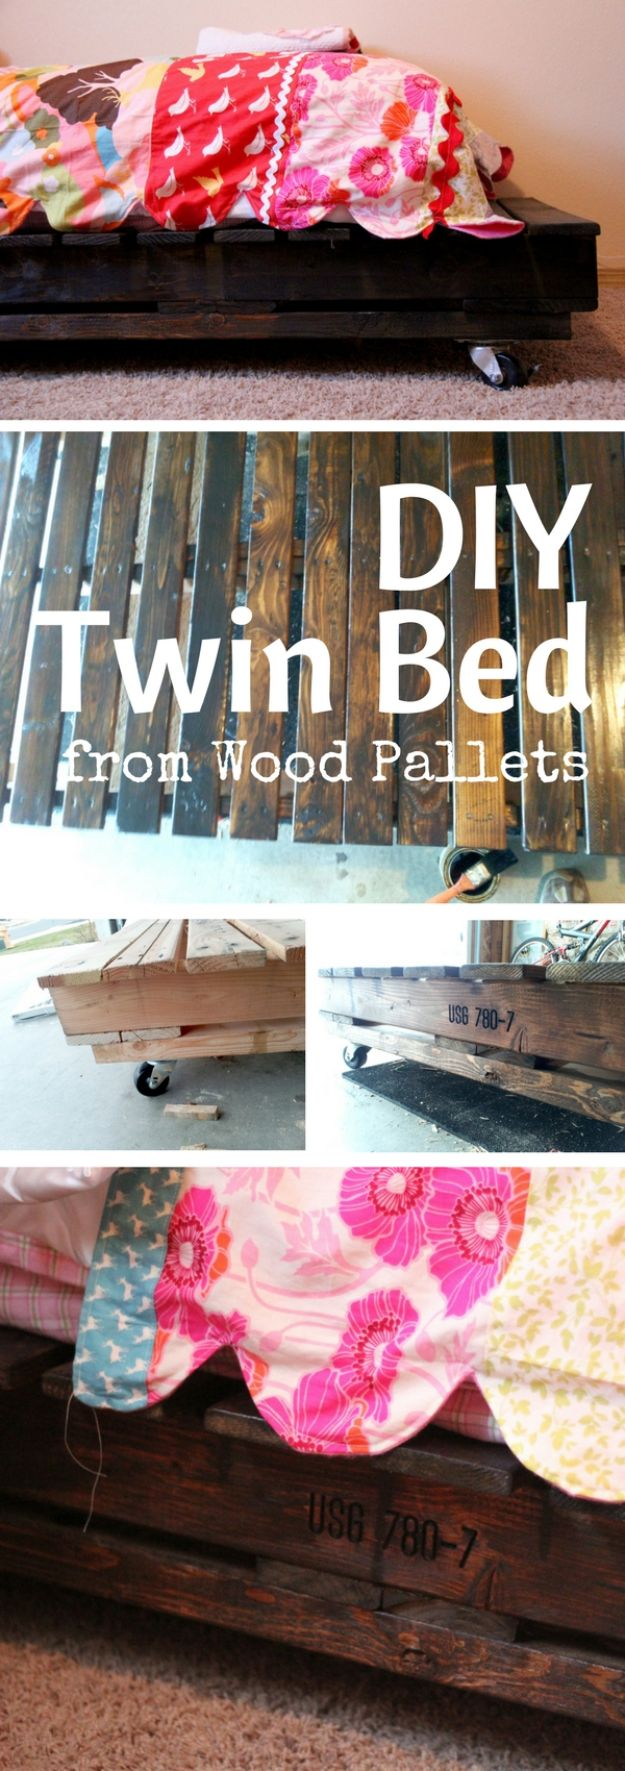 DIY Bed Frames - Twin Bed From Wood Pallets - How To Make a Headboard - Do It Yourself Projects for Platform Beds, Twin, King, Queen and Full Bed - Kids Rooms, Drawers and Storage Units, Bookshelf step by step tutorial free plans